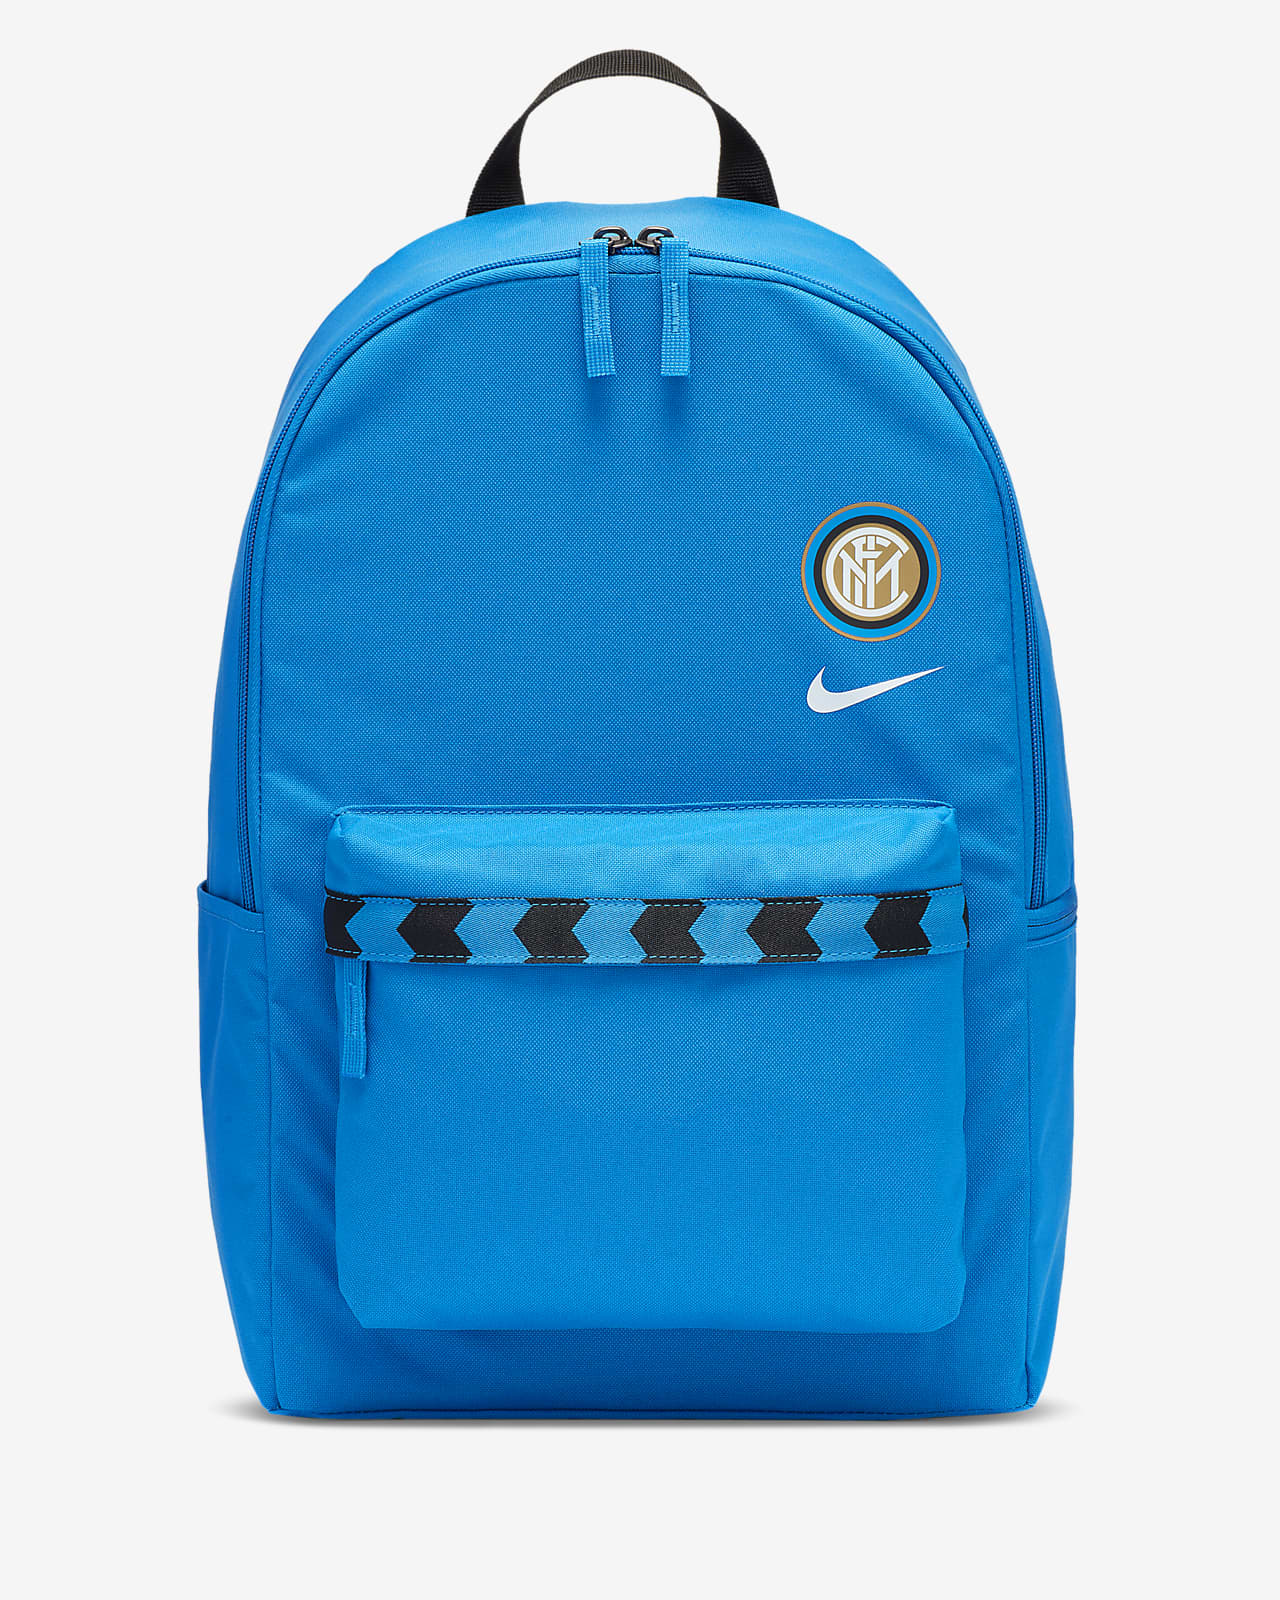 Inter Milan Stadium Football Backpack